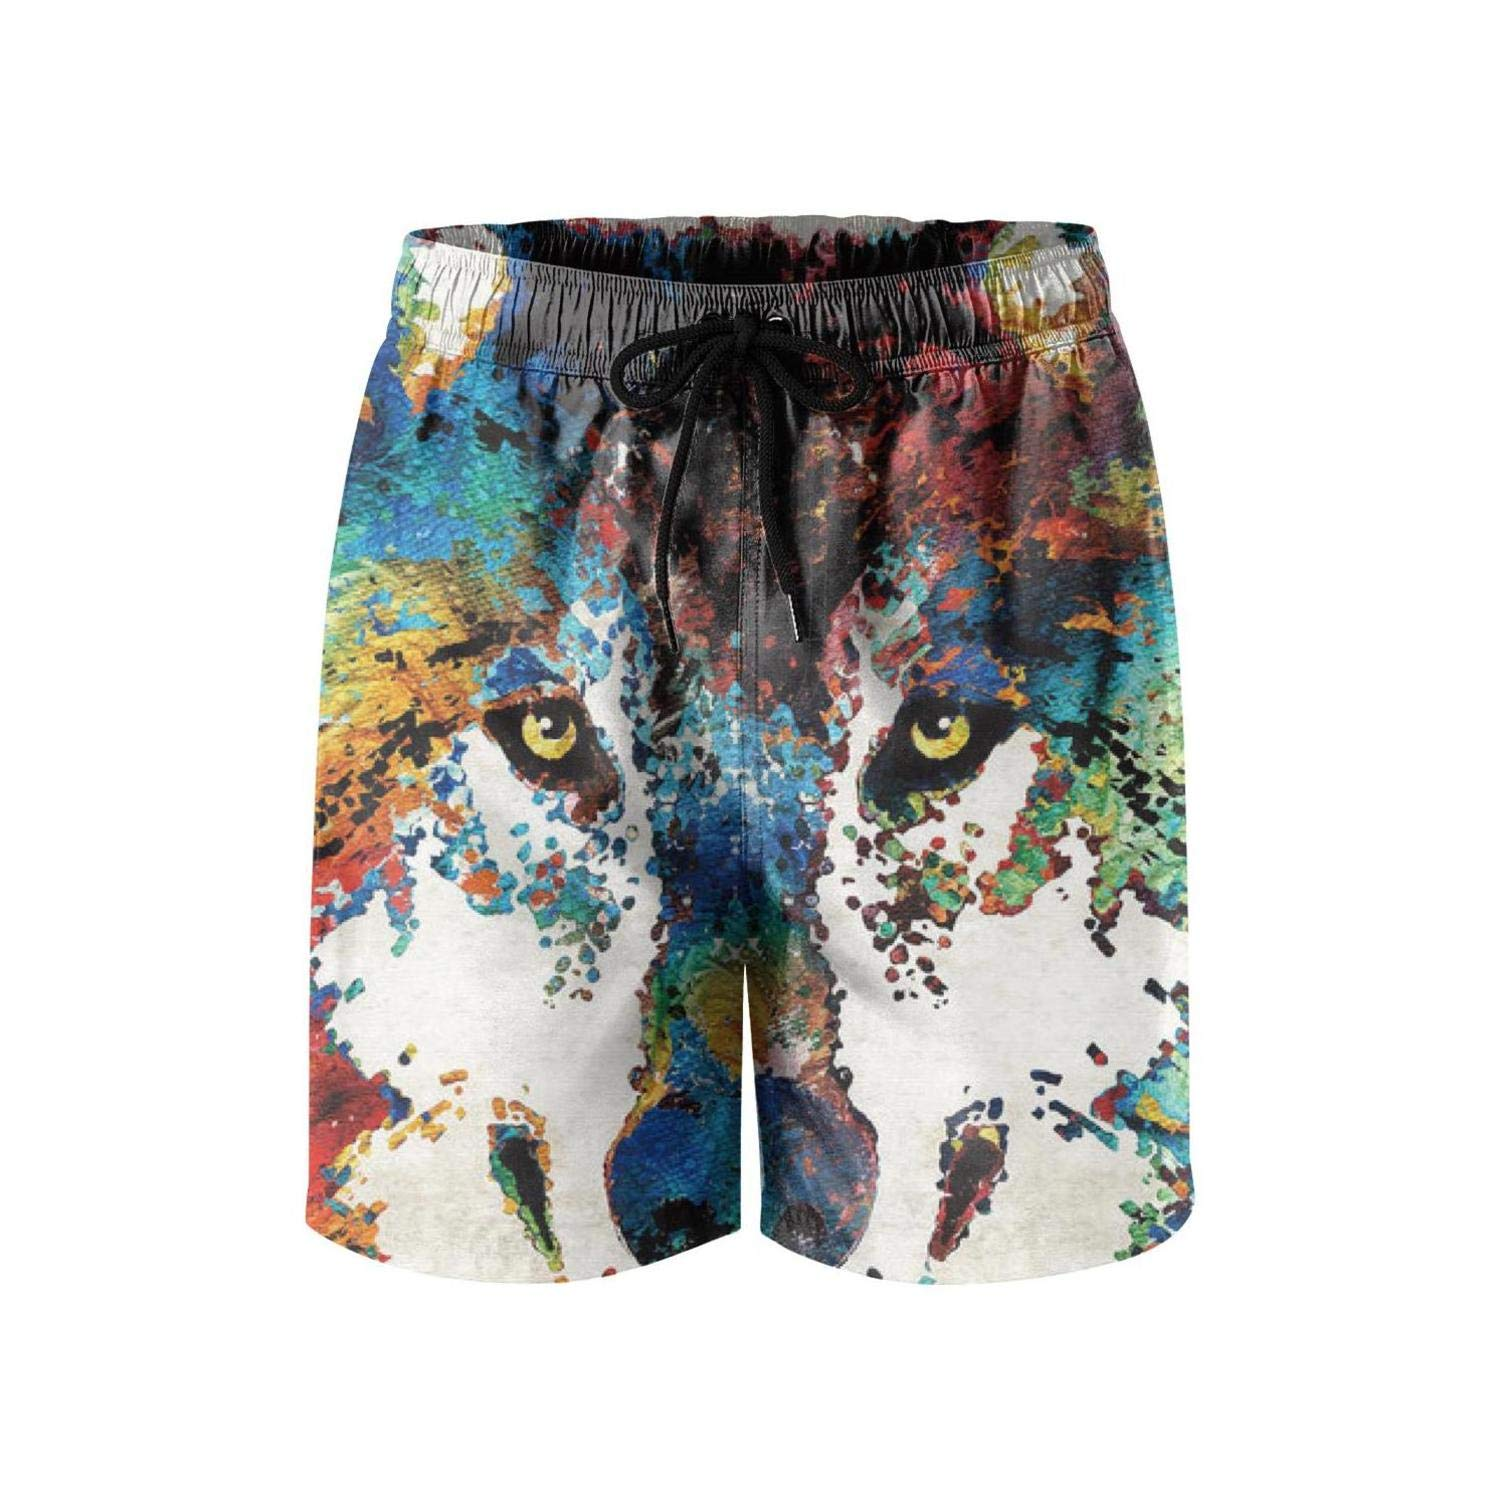 Stalking Wolf in The Dark Man Swim Trunks Outdoor Water Sports Light and Comfortable Board Shorts